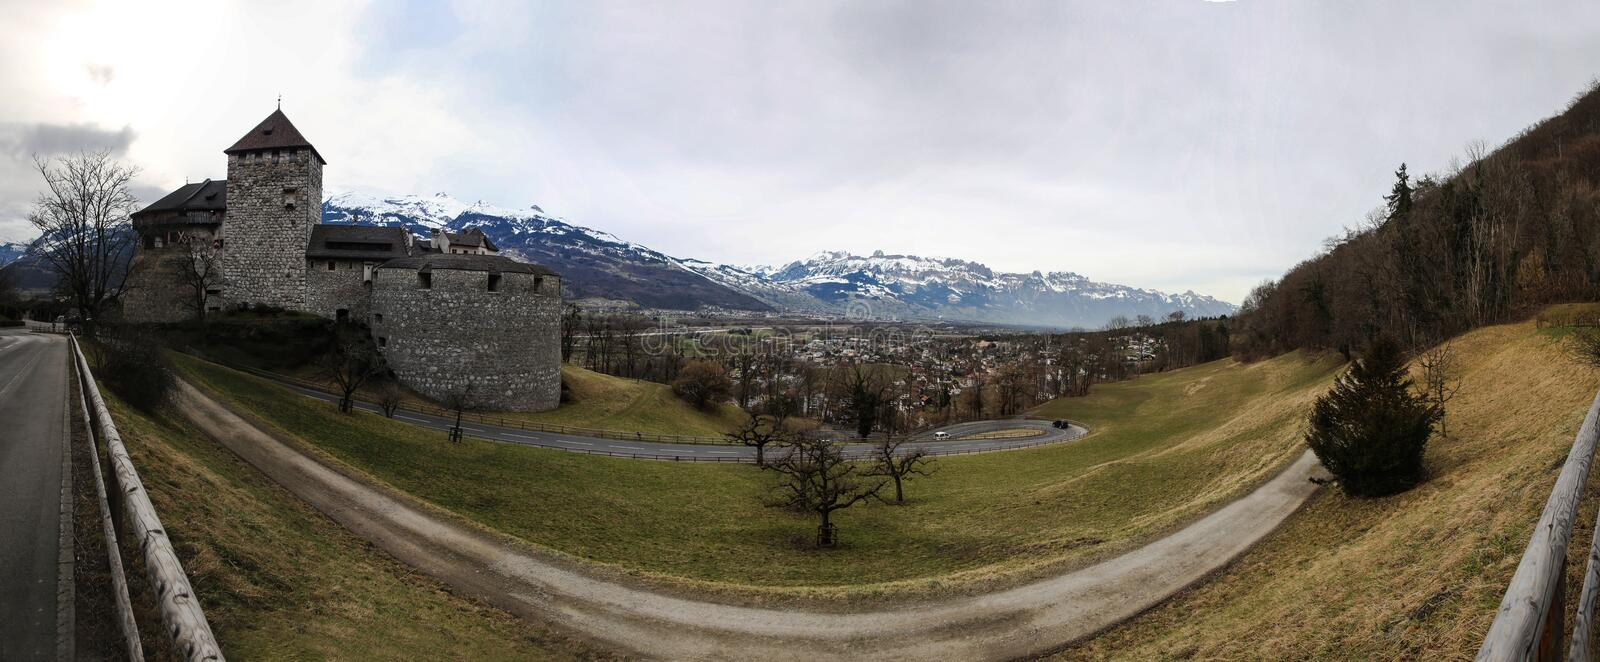 Download Vaduz Castle View stock image. Image of center, country - 30191145